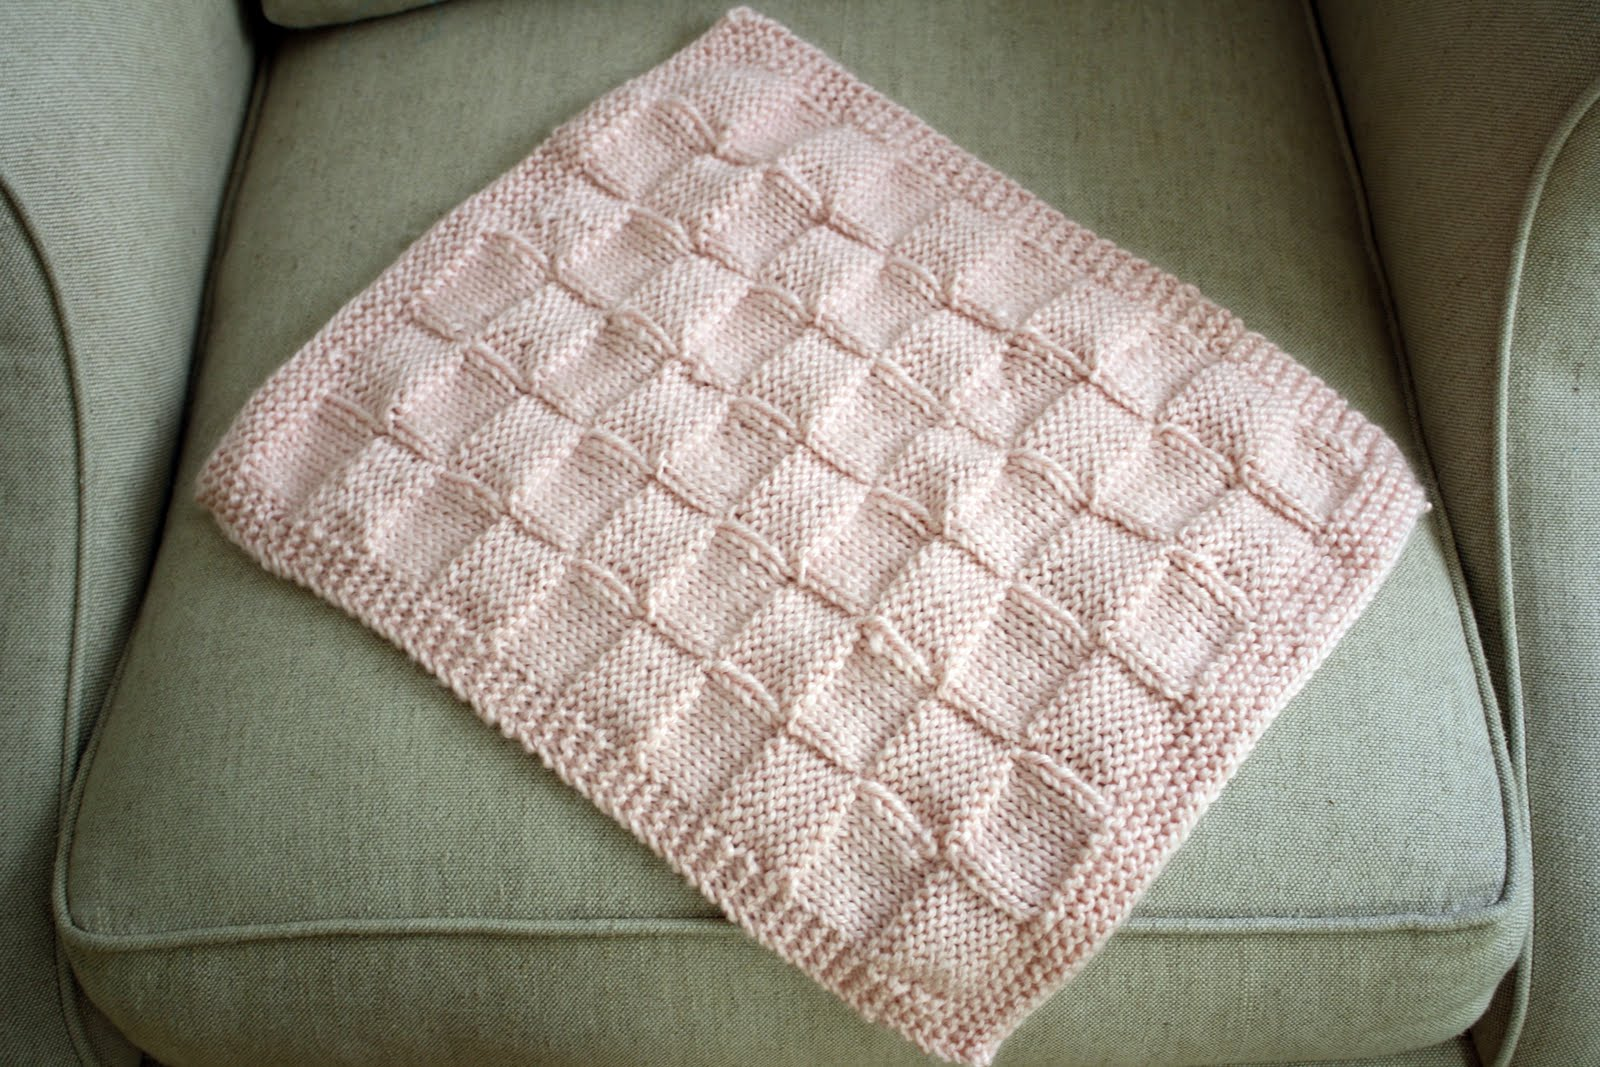 Knitted Blankets And Throws Patterns : sew grown: knitted doll blanket